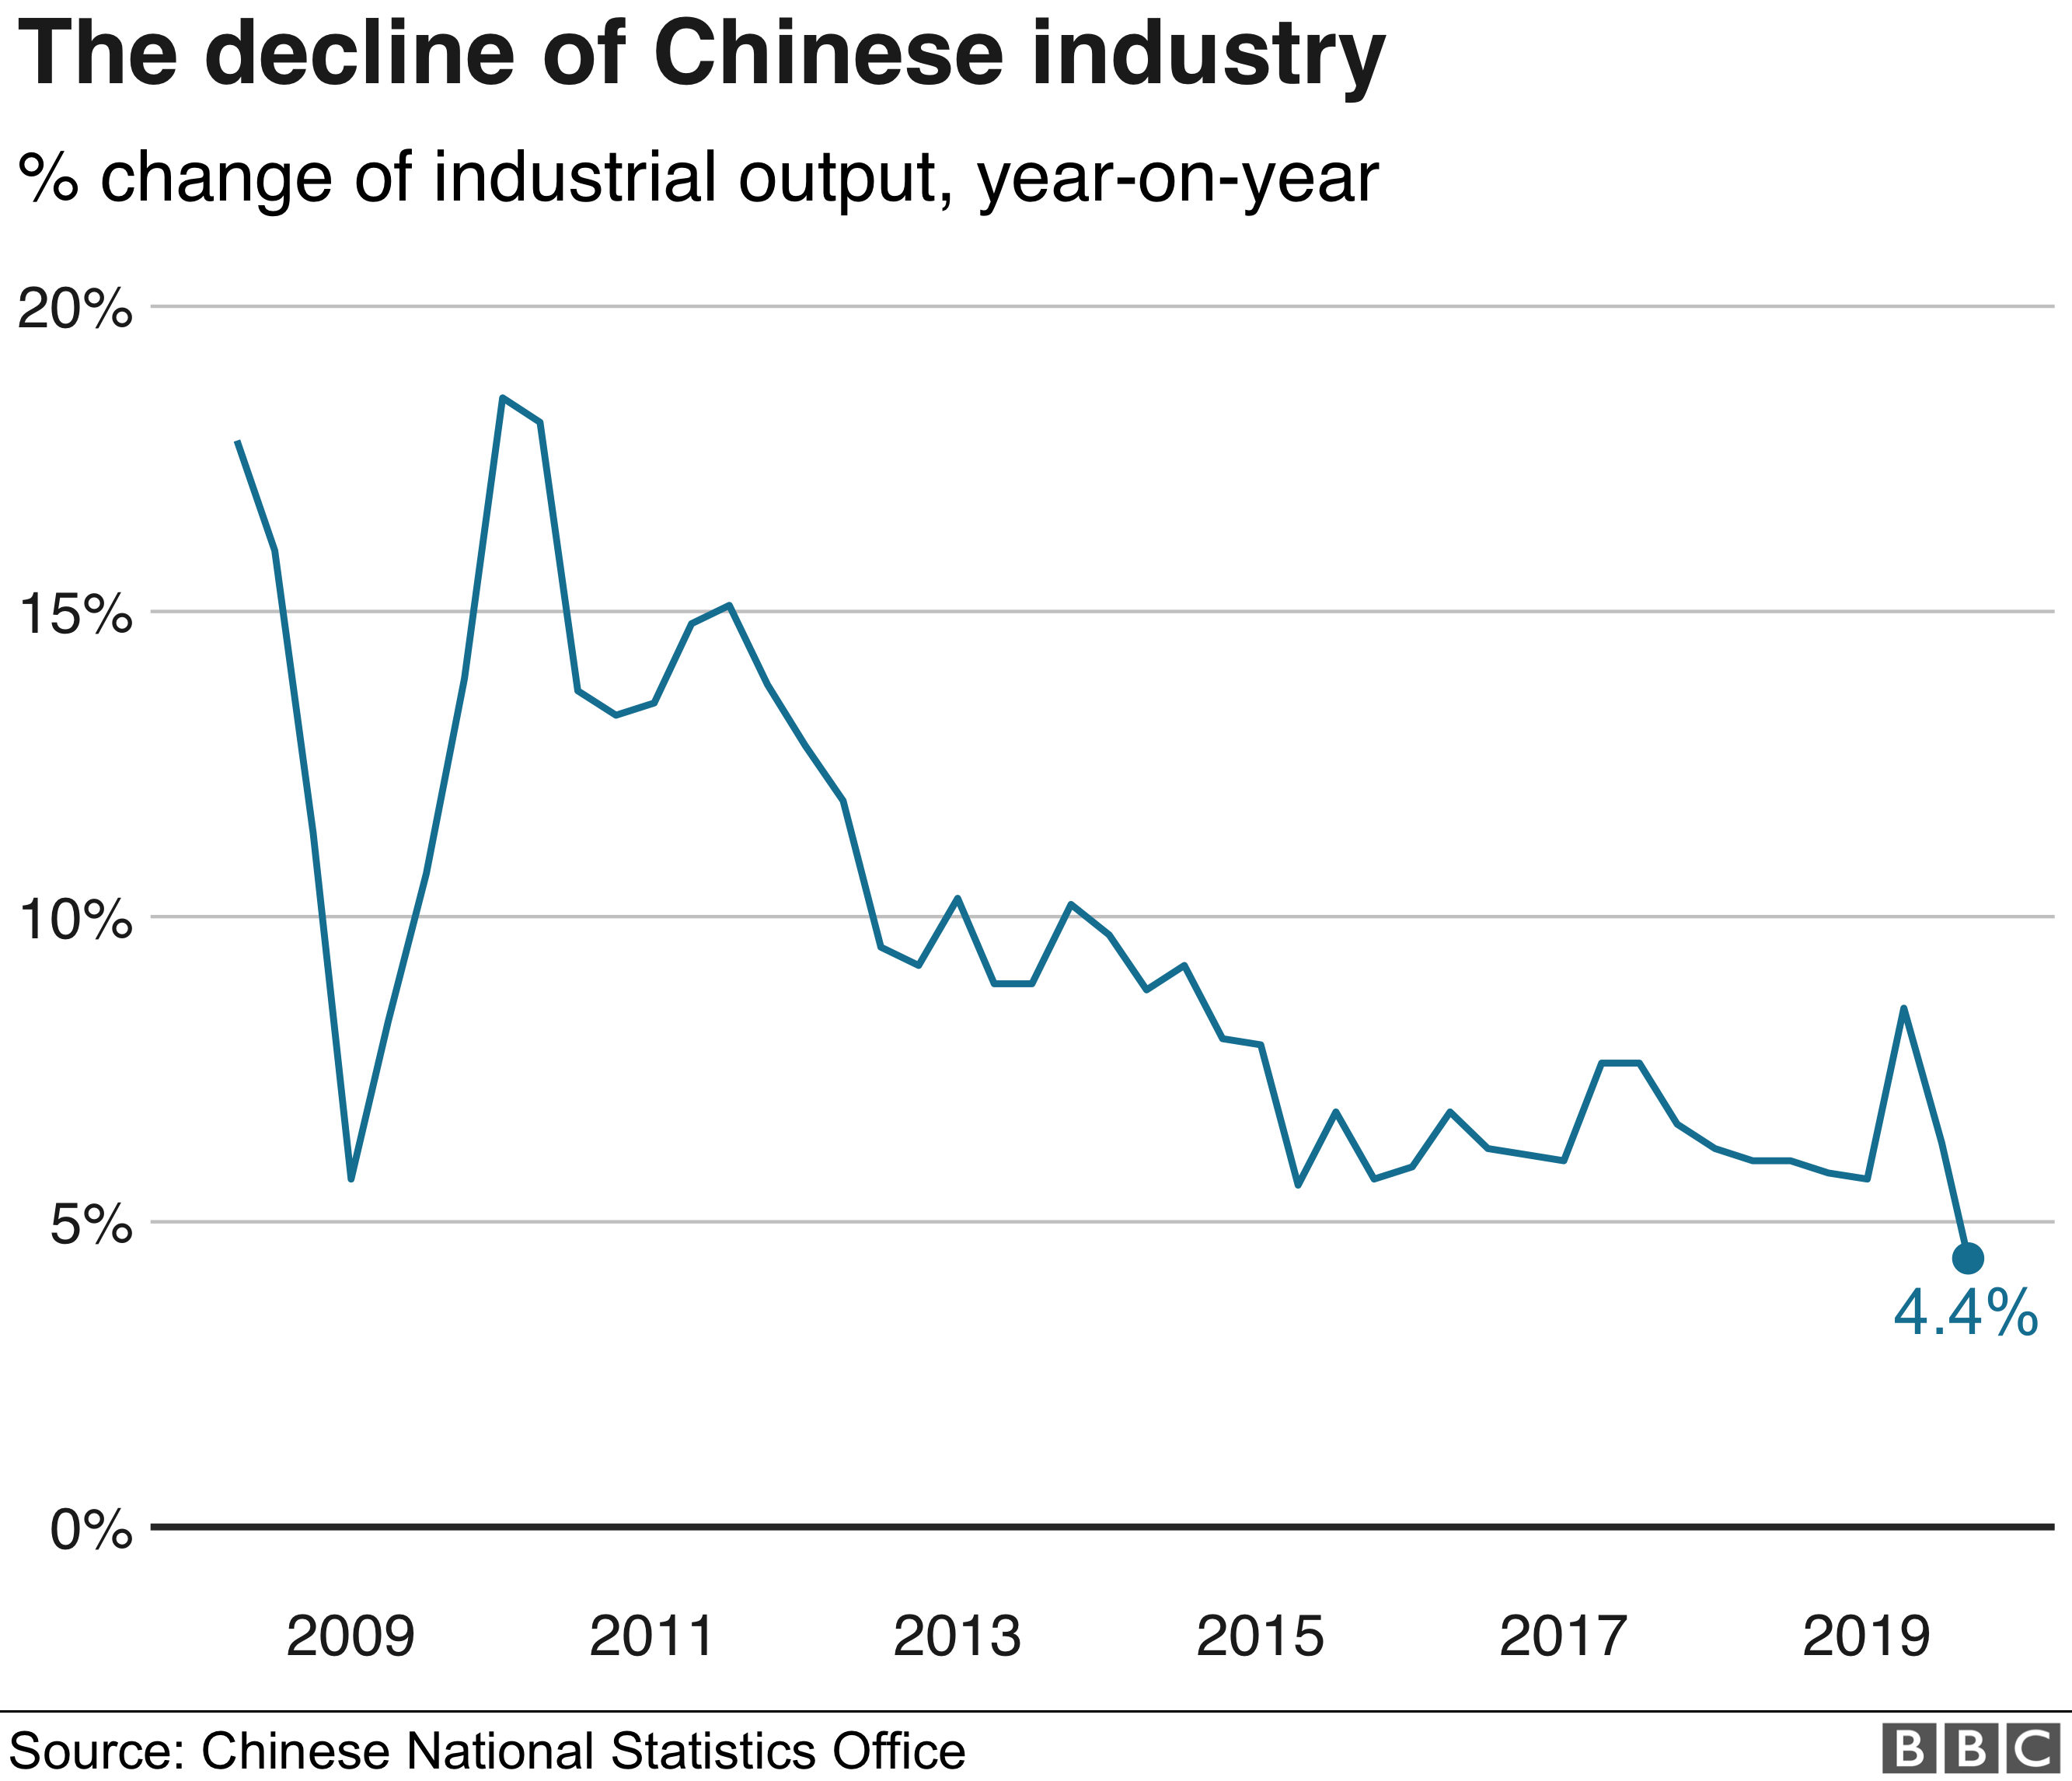 The decline of Chinese industry